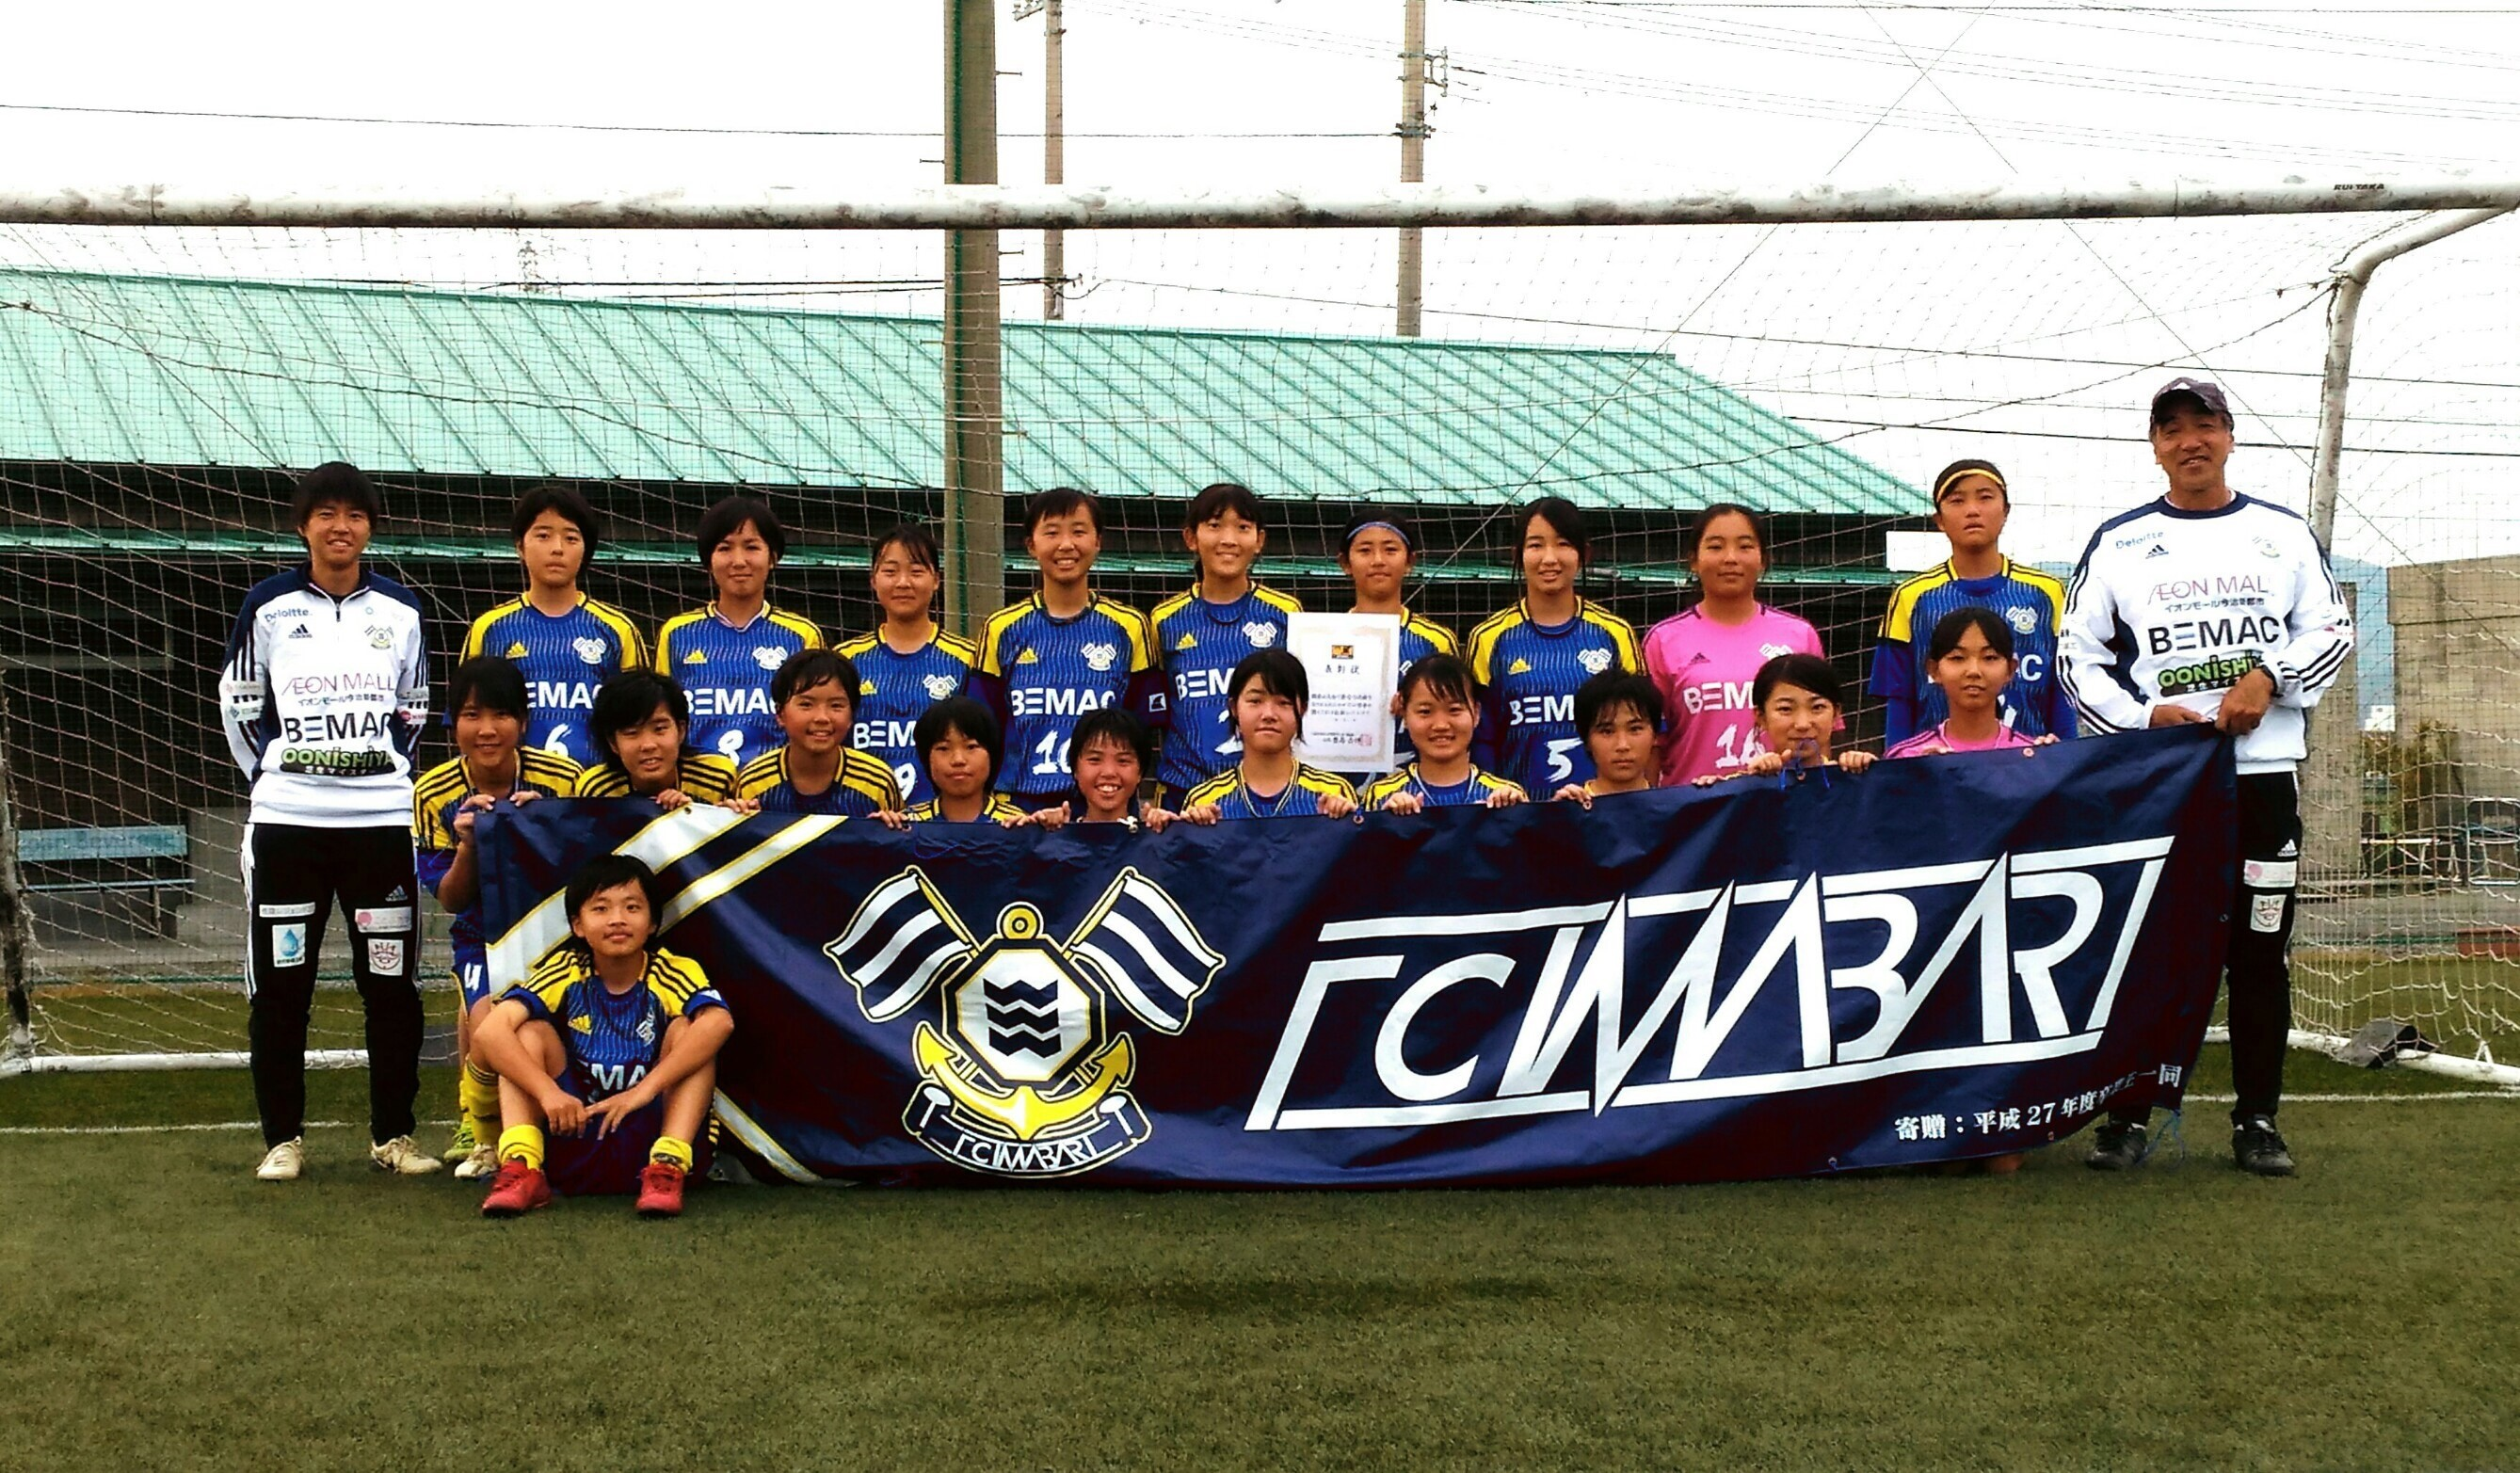 FCIMABARI_ladies2017.JPEG